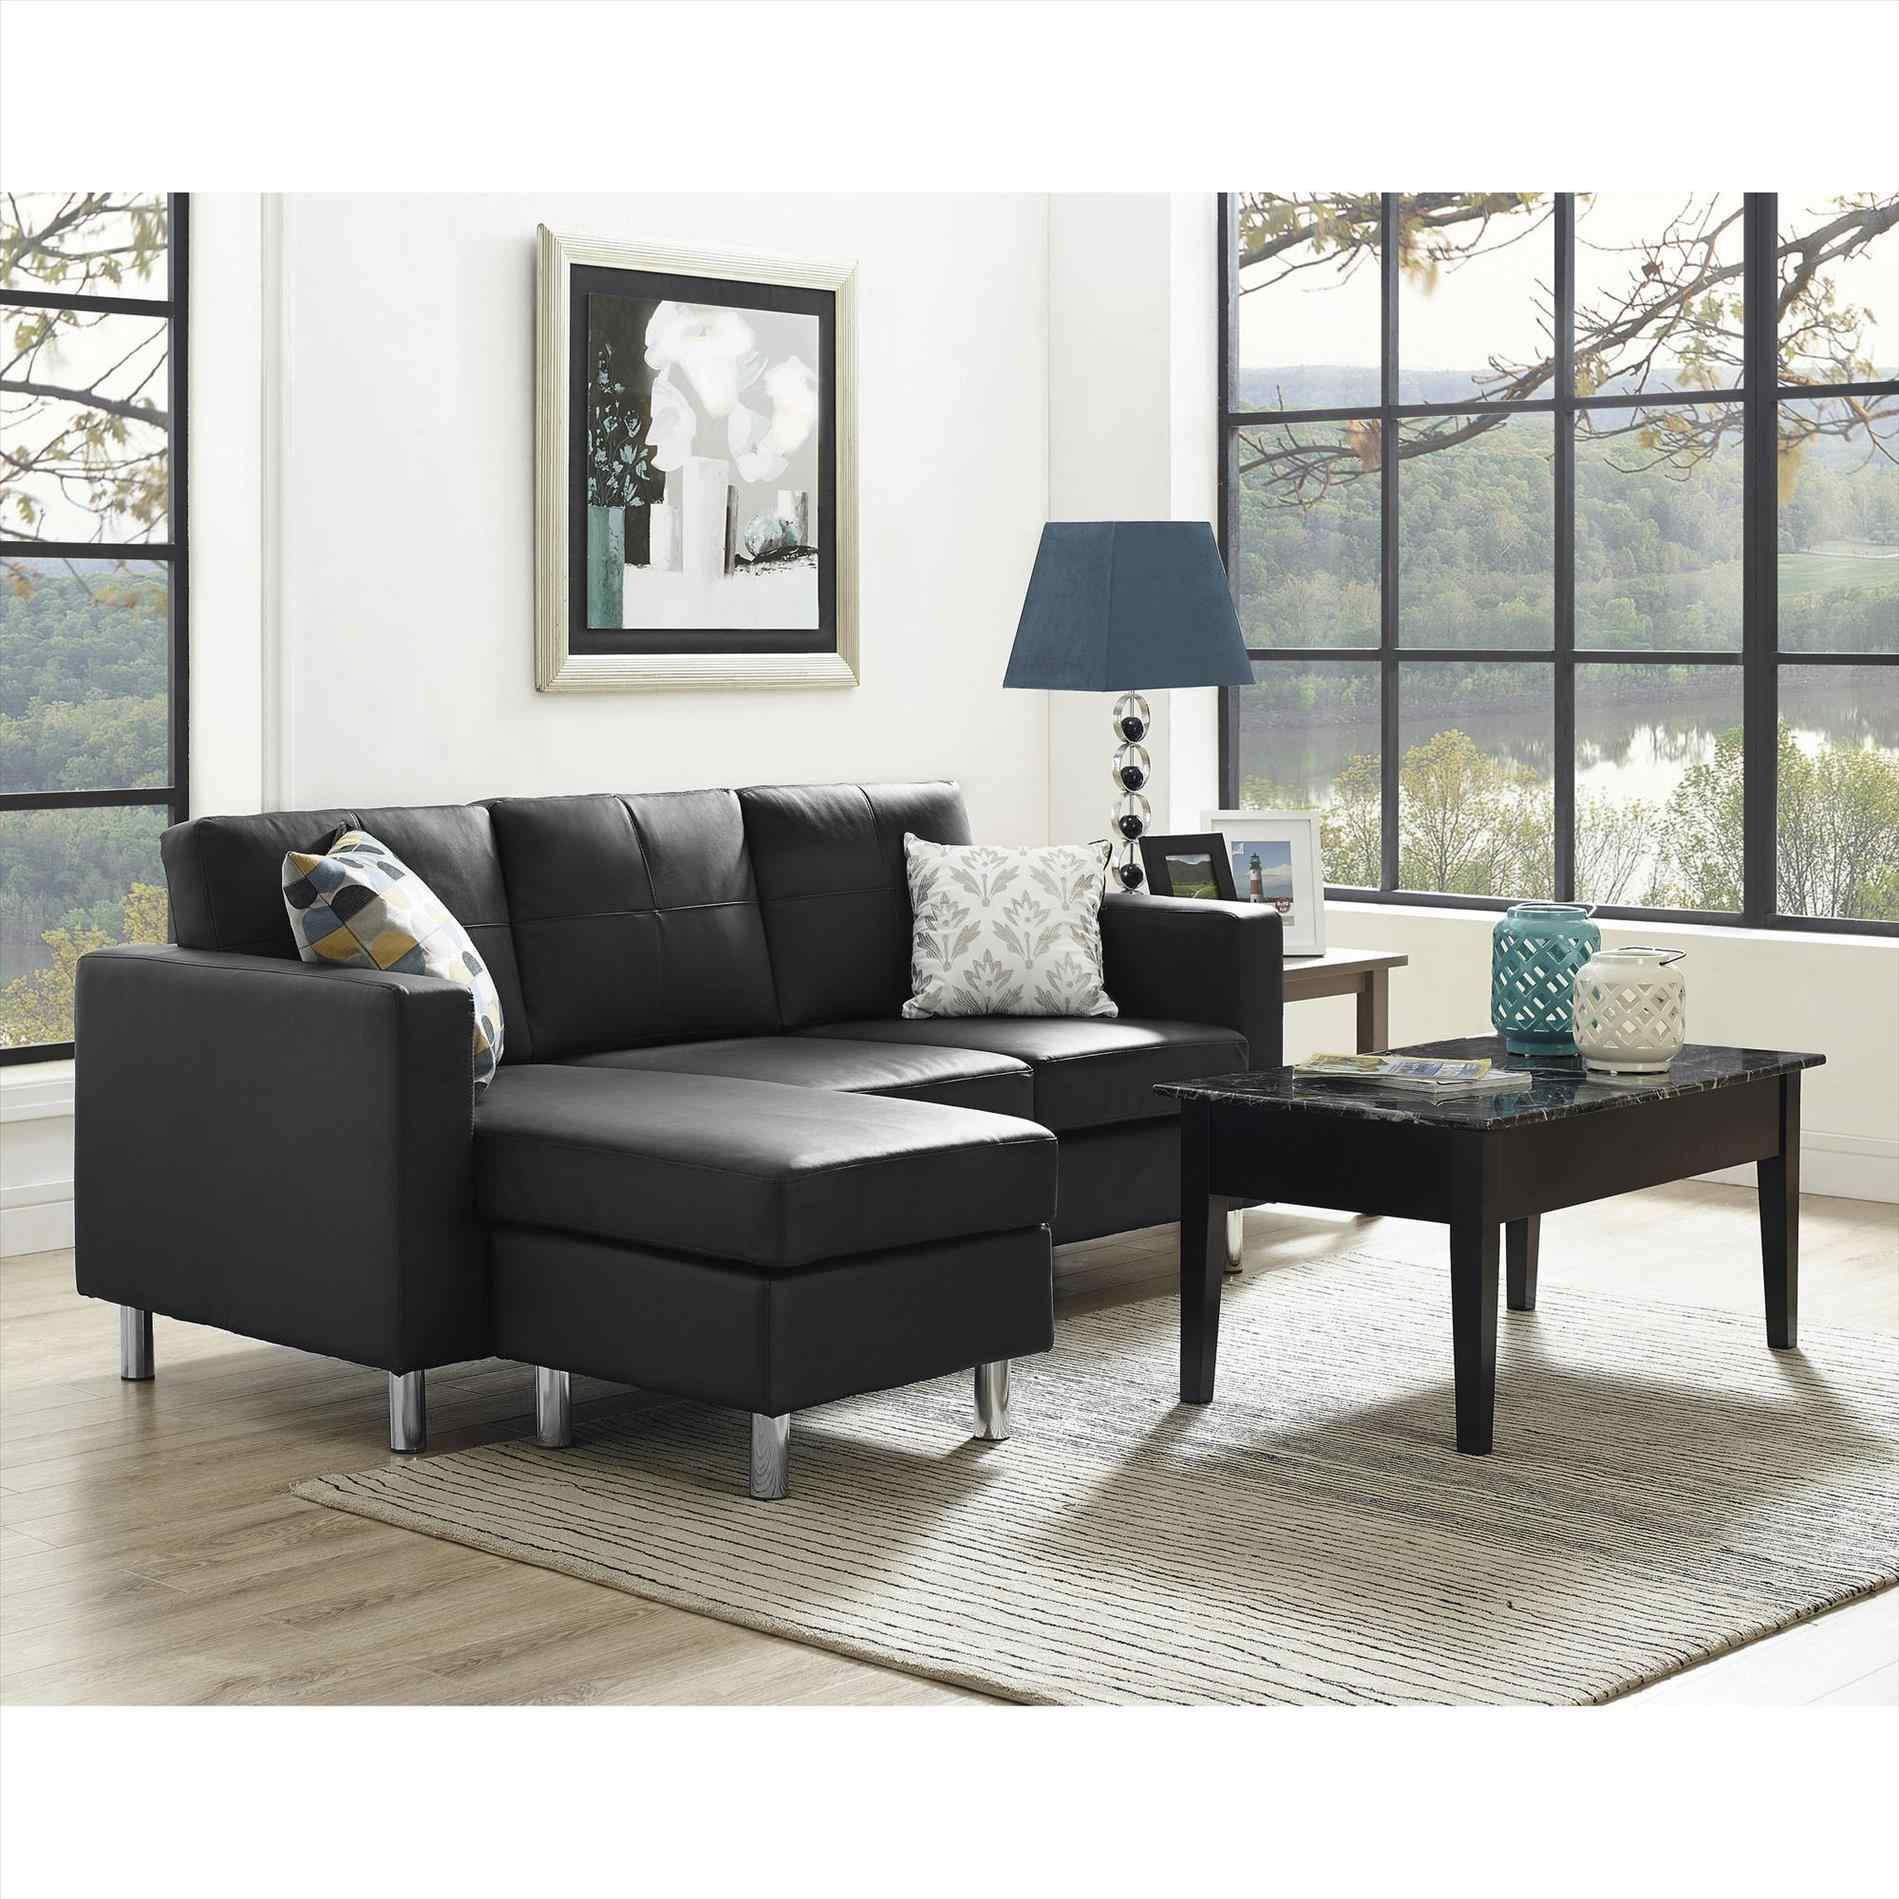 Tx Local Furniture Outlet In Austin Bedroom Texas Home Design Ideas Sectional Sofas San